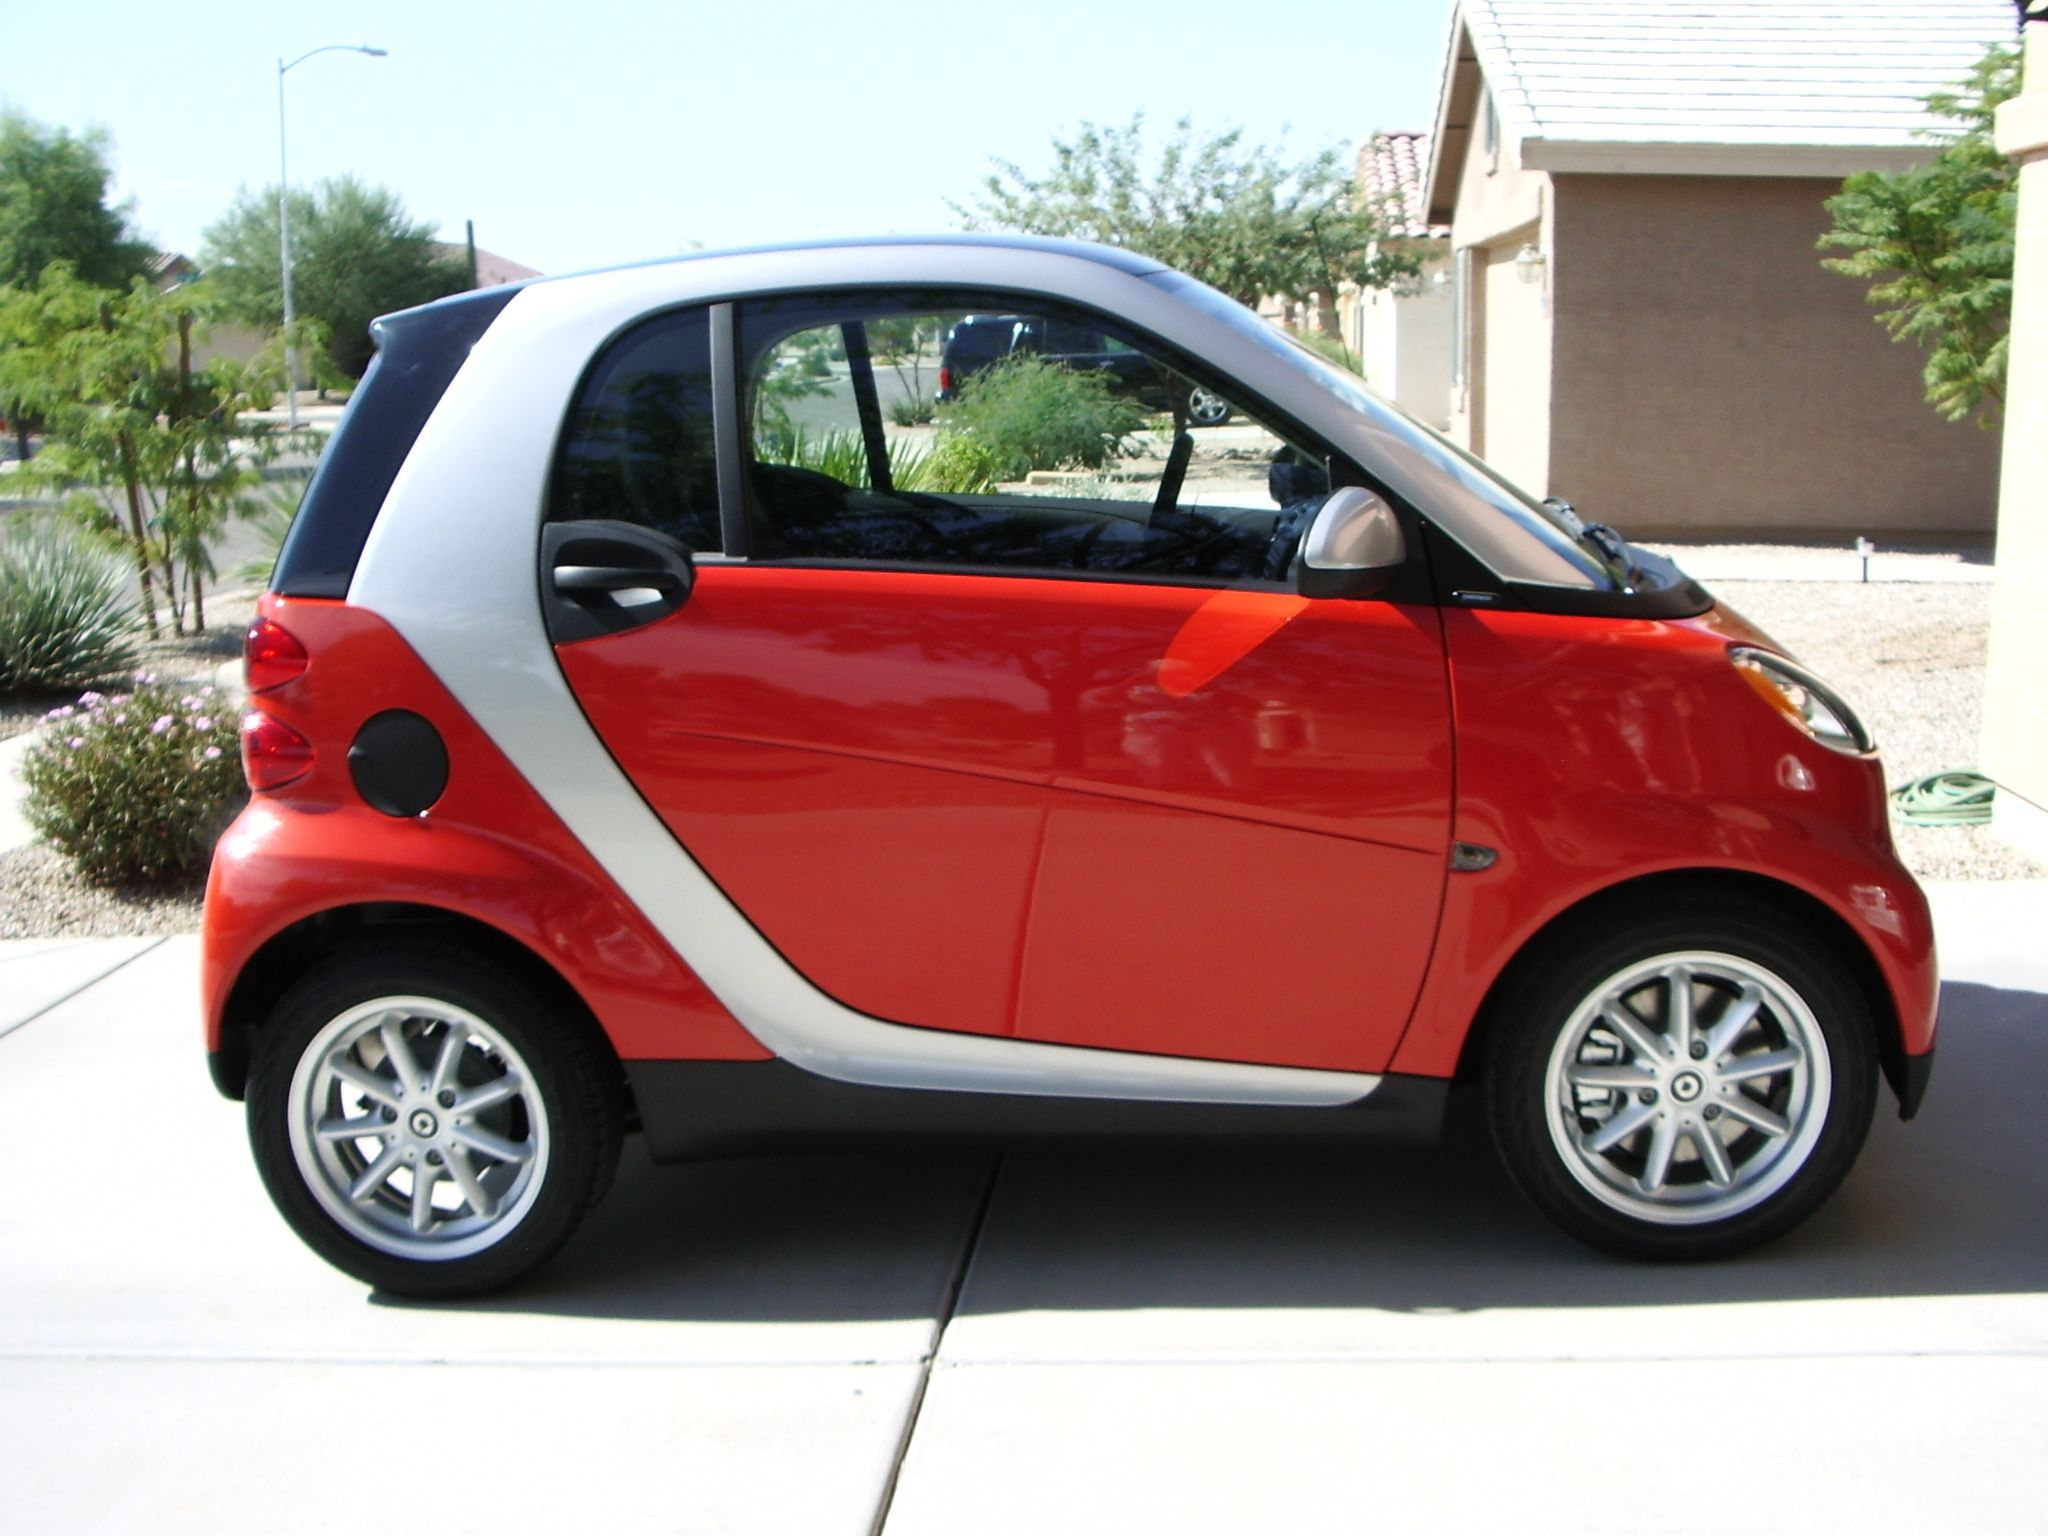 Smart Car Price Comparison - Get The Best Deal | Google doodle ideas ...